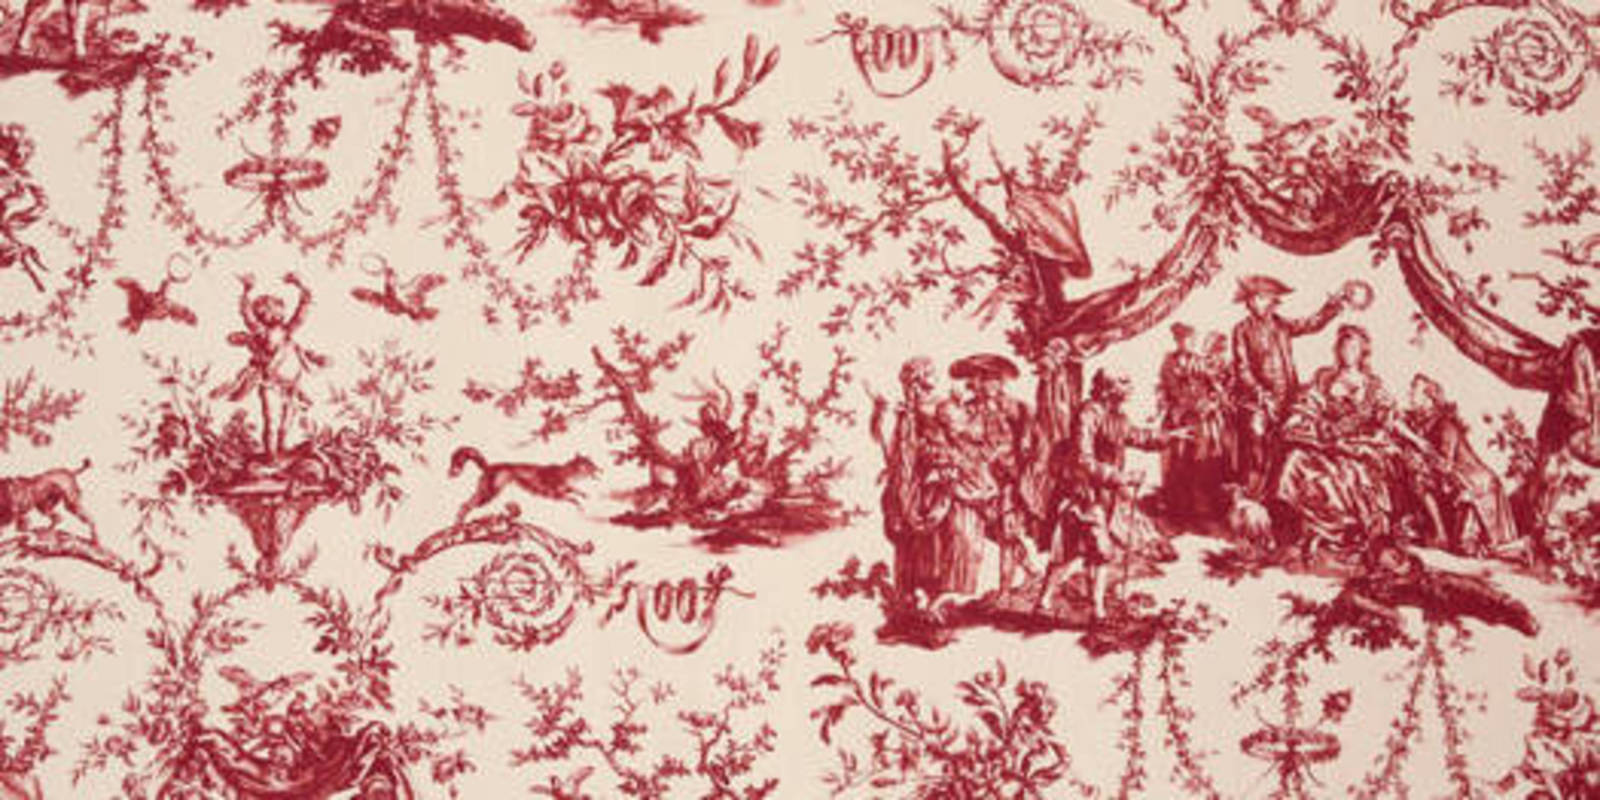 18th century wallpaper crivelli - photo #41